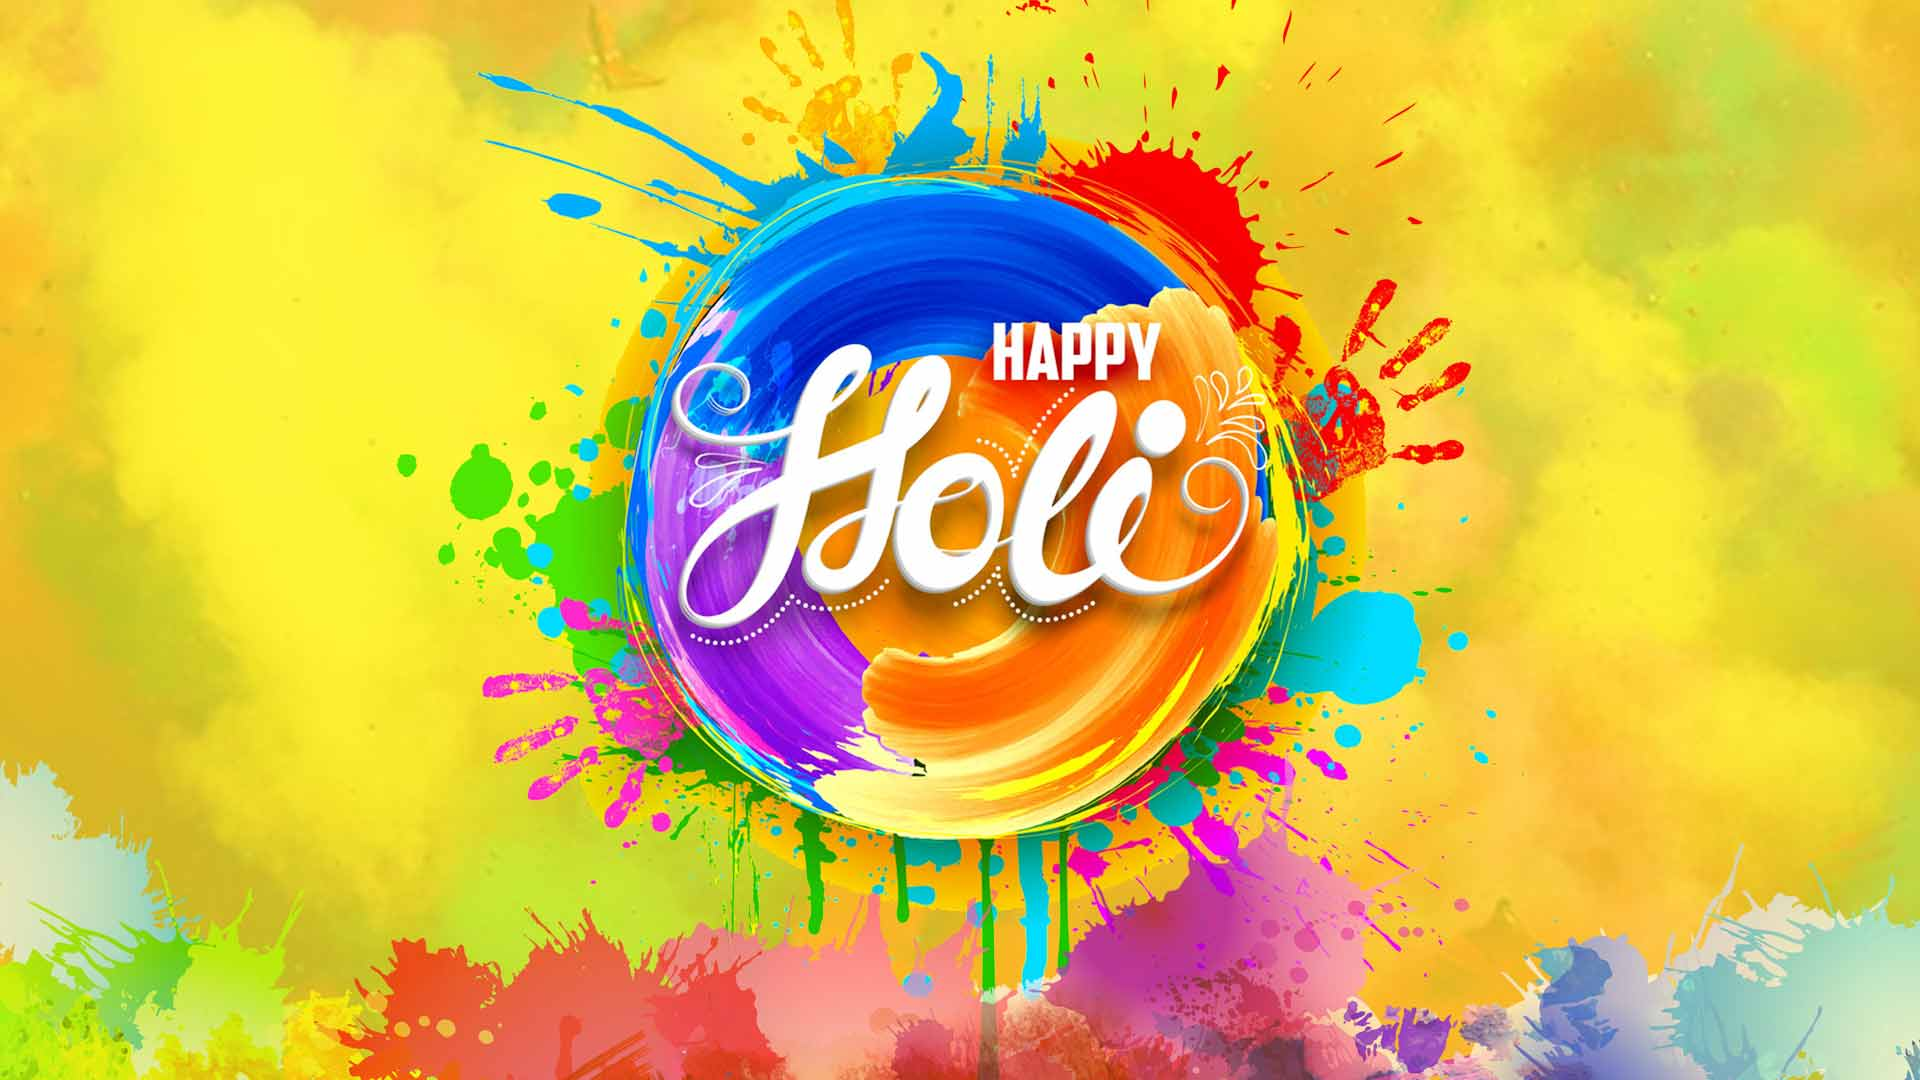 HOLI: SPLASHING COLORS OF JOY